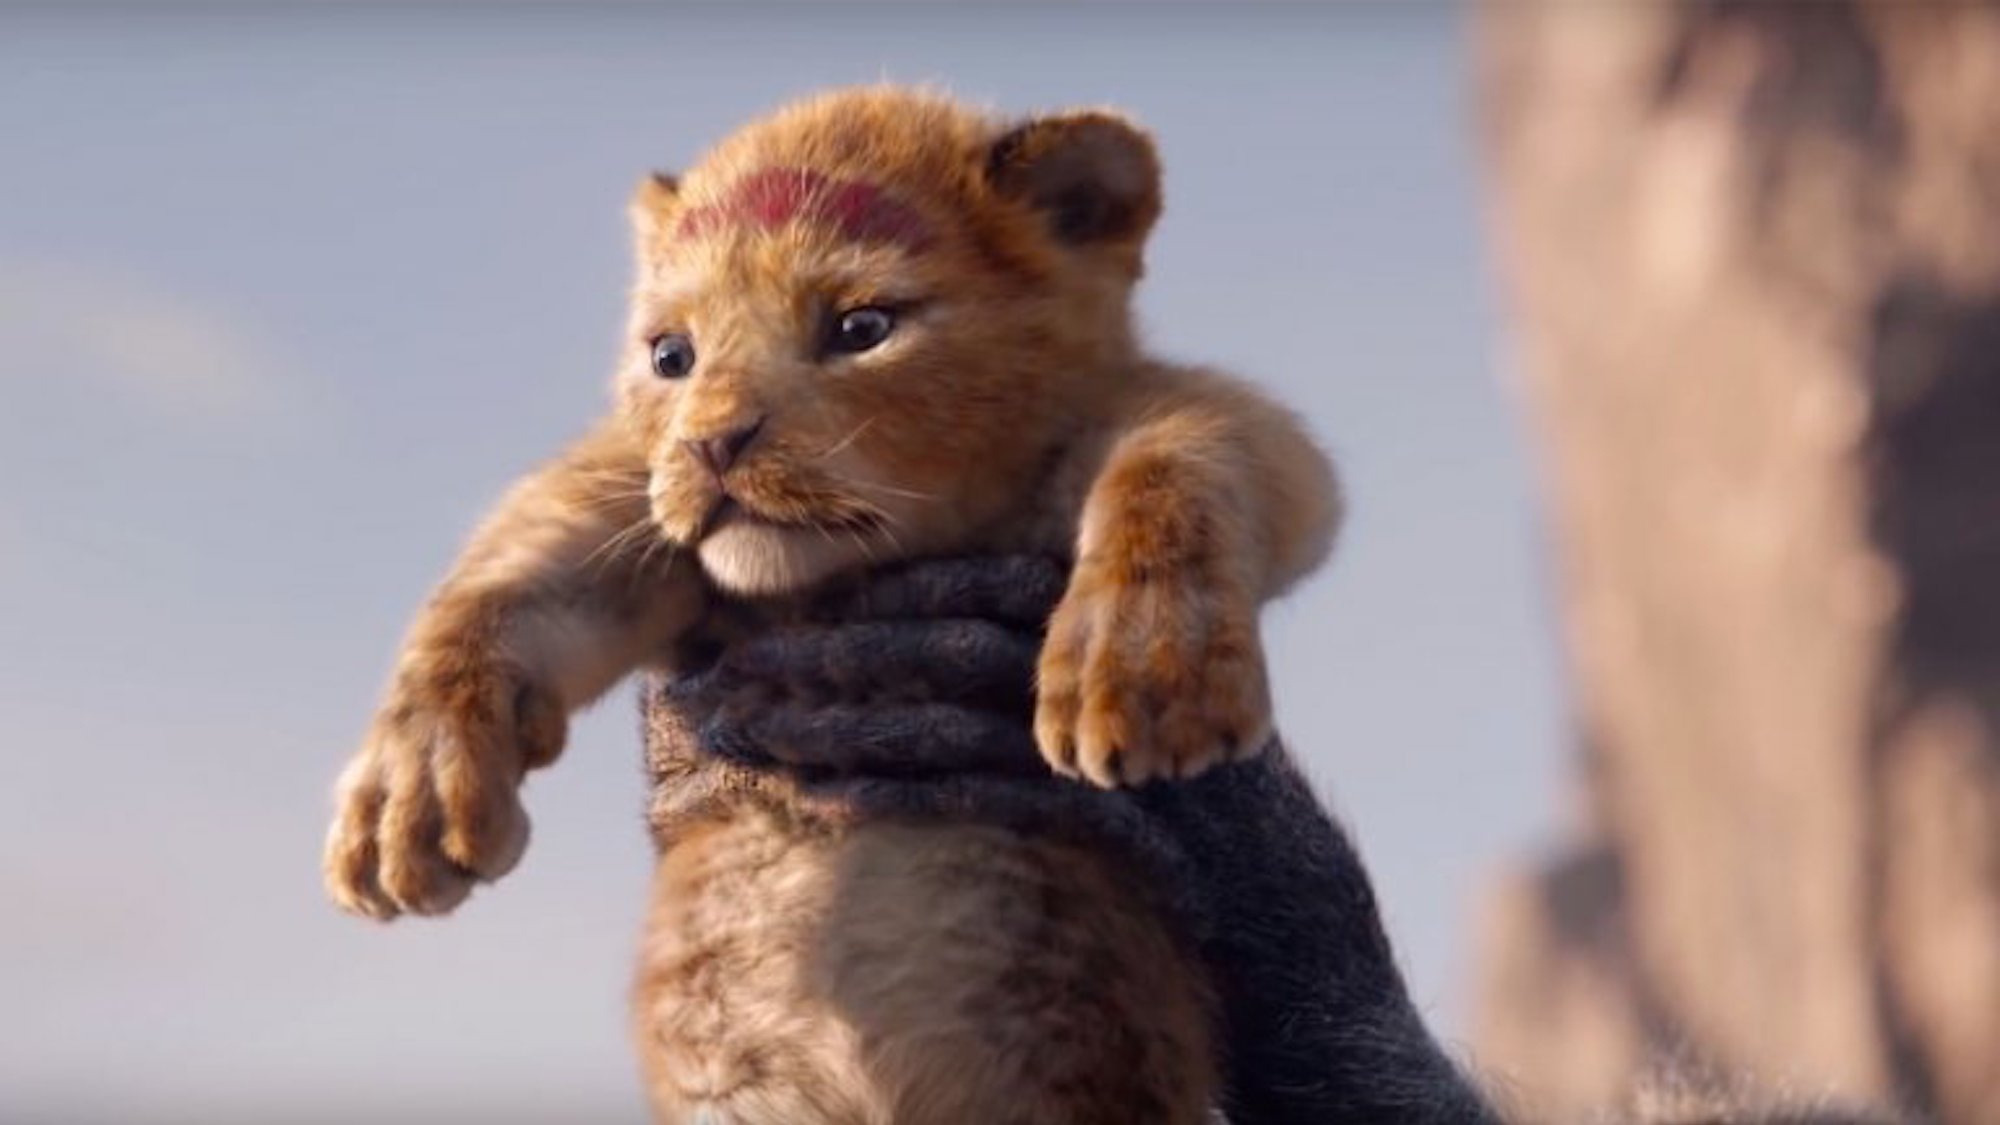 watch   u2018the lion king u2019 goes from cartoon to cgi in first